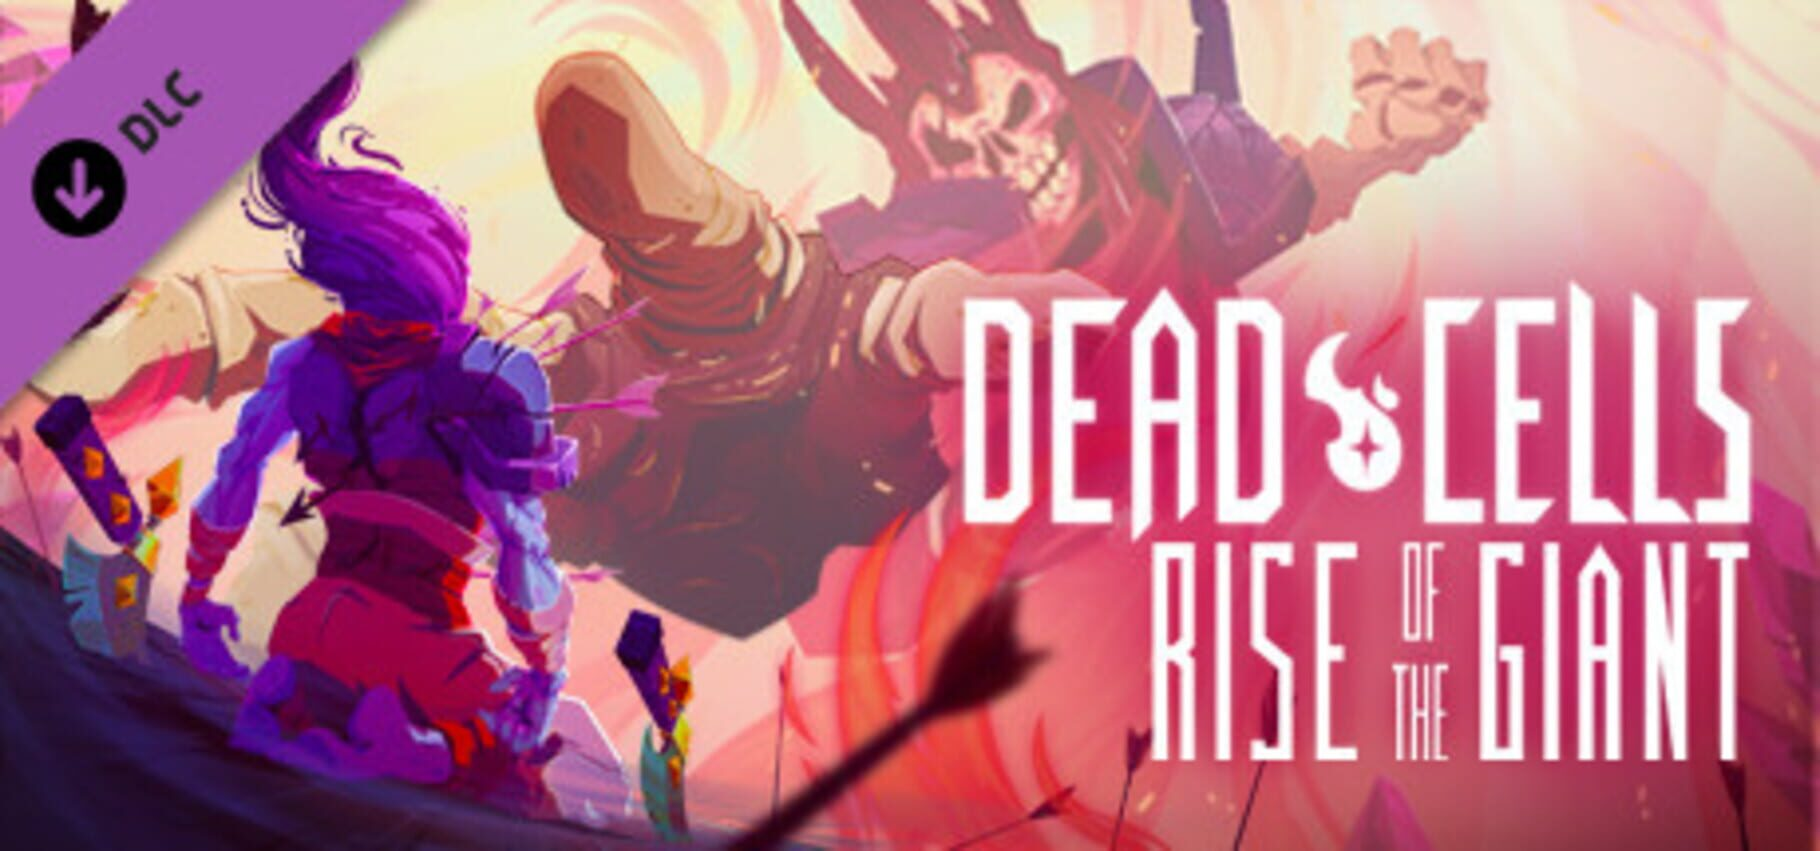 buy Dead Cells: Rise of the Giant cd key for all platform